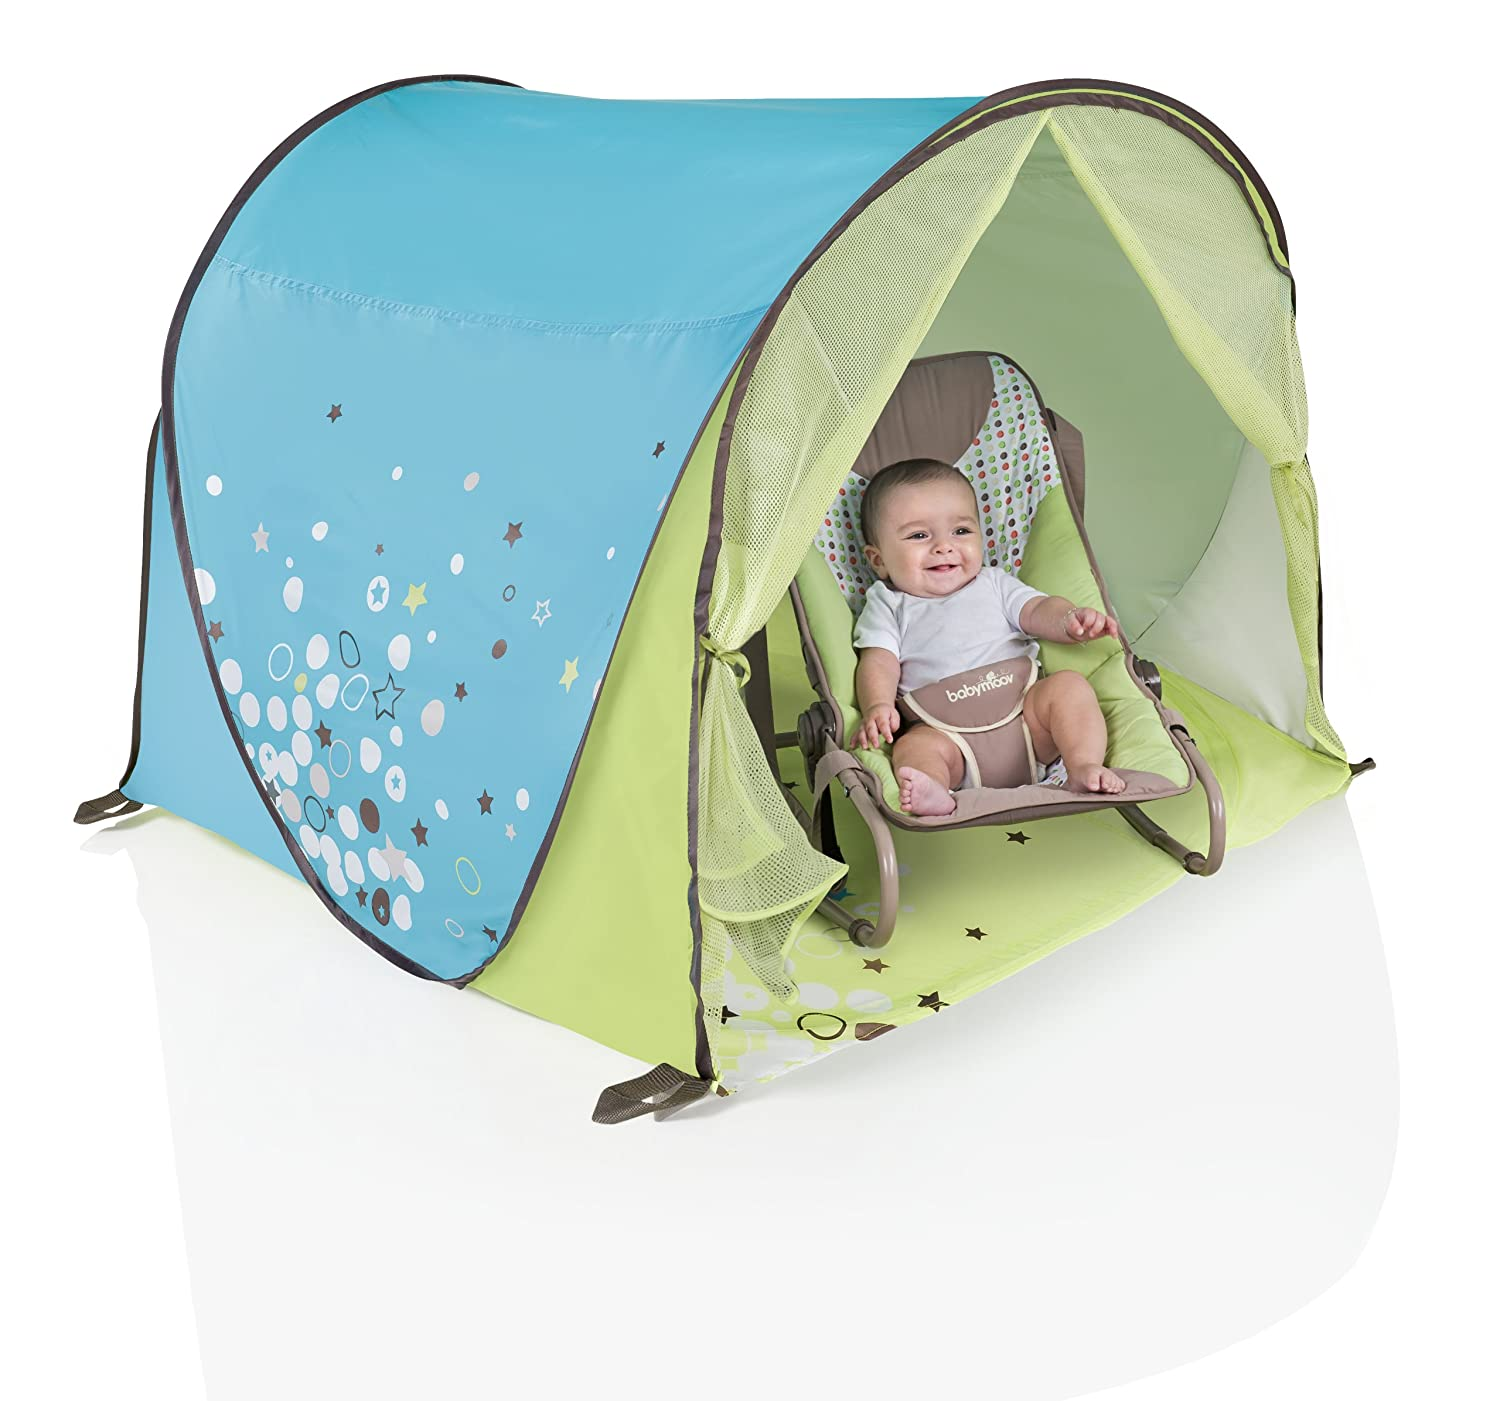 Amazon.com Babymoov Anti-UV Tent - UPF 50+ Sun Shelter for Toddlers and Children easily folds into a Carrying Bag for Outdoors u0026 Beach Baby  sc 1 st  Amazon.com : uv baby sun tent - memphite.com